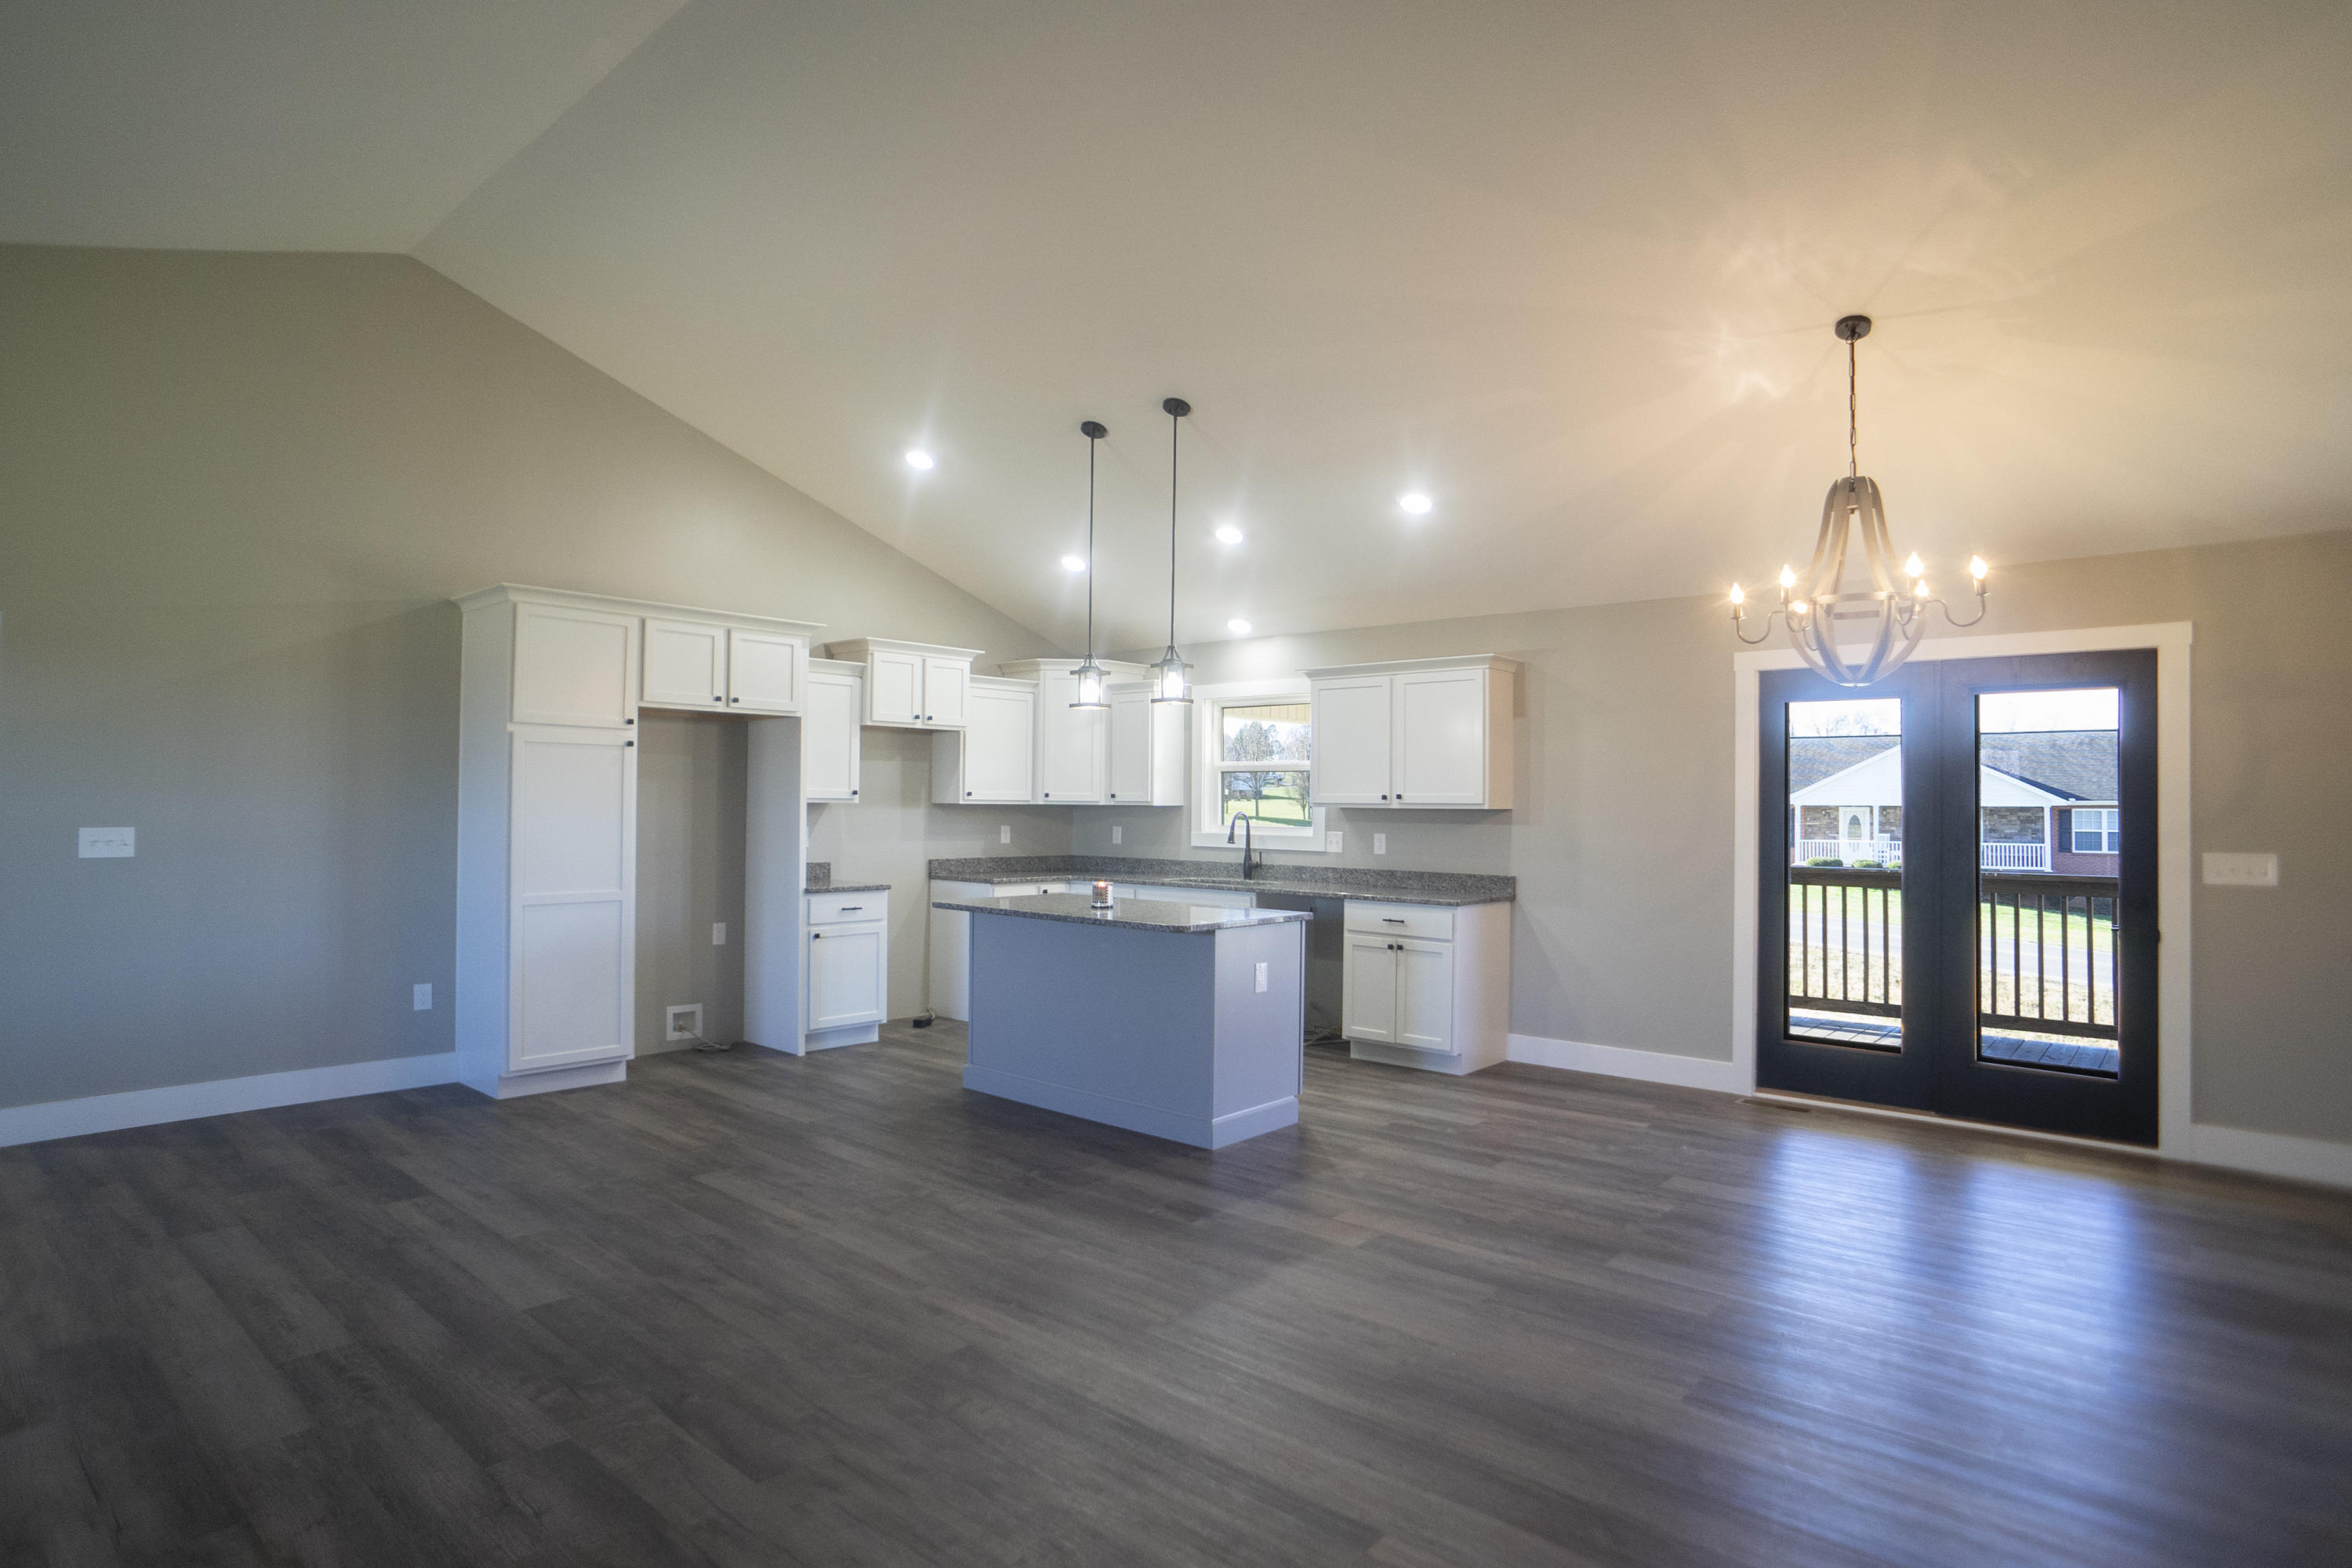 1519 Rosewood Dr Drive Preview Image 2